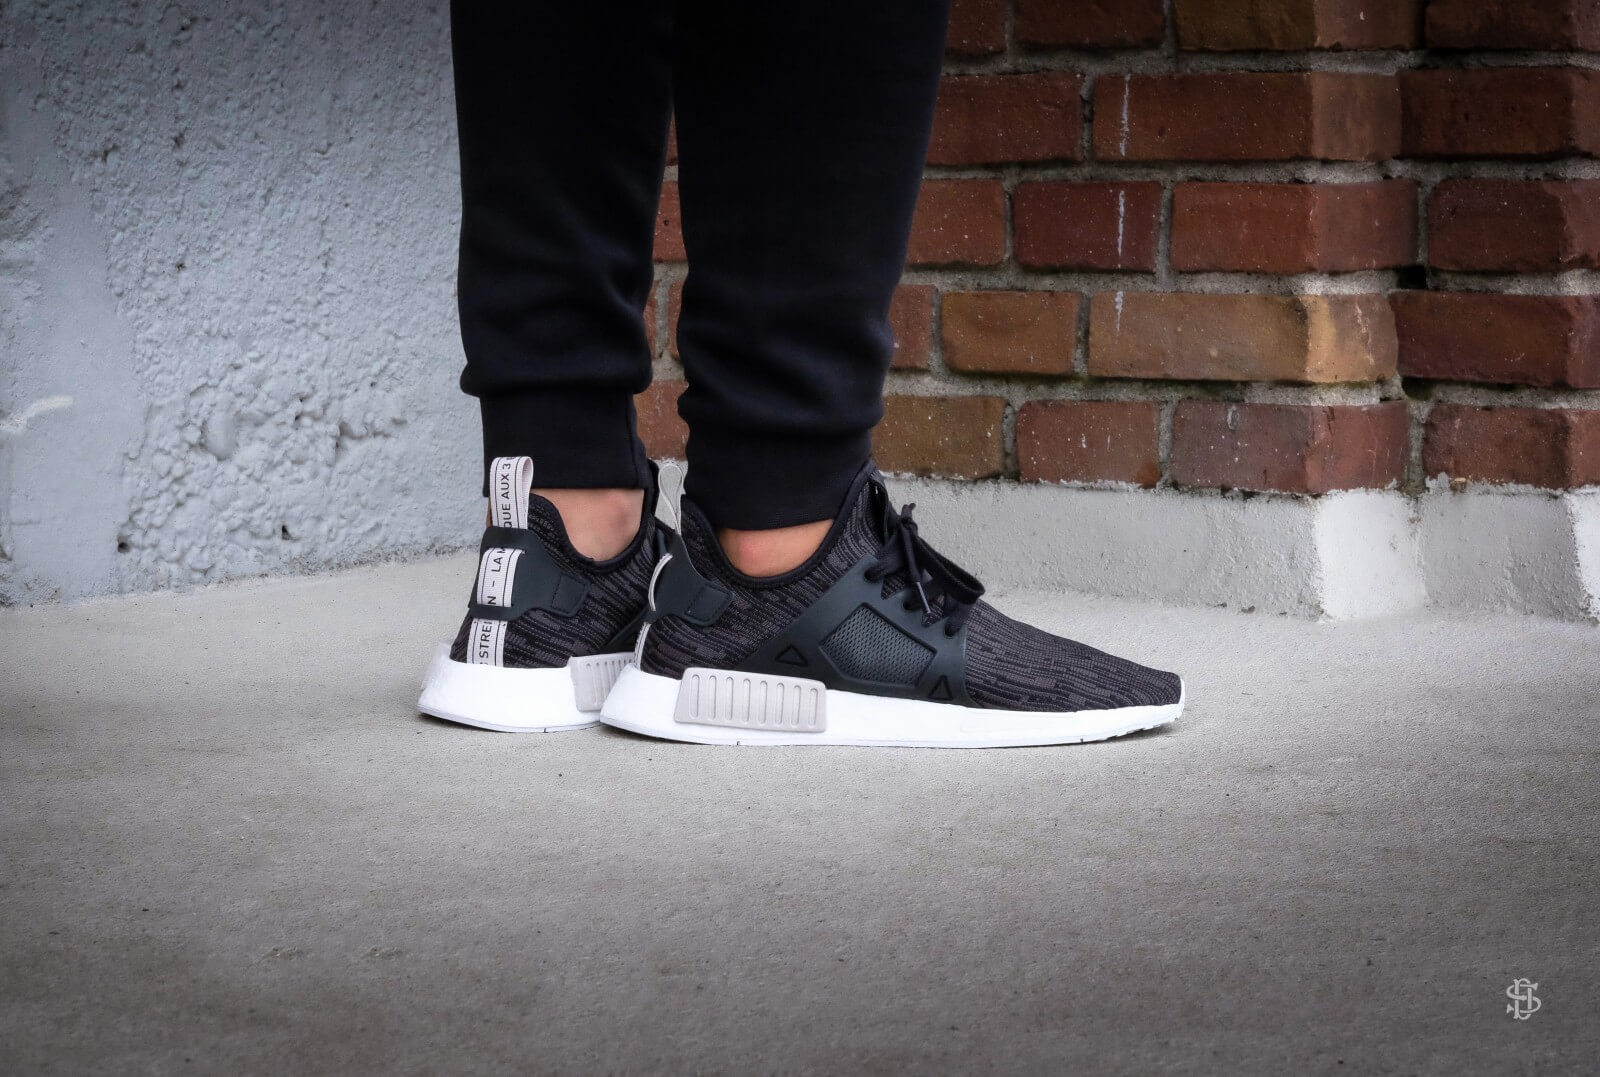 adidas NMD Xr1 Primeknit Trainers In Black עזרה FXP